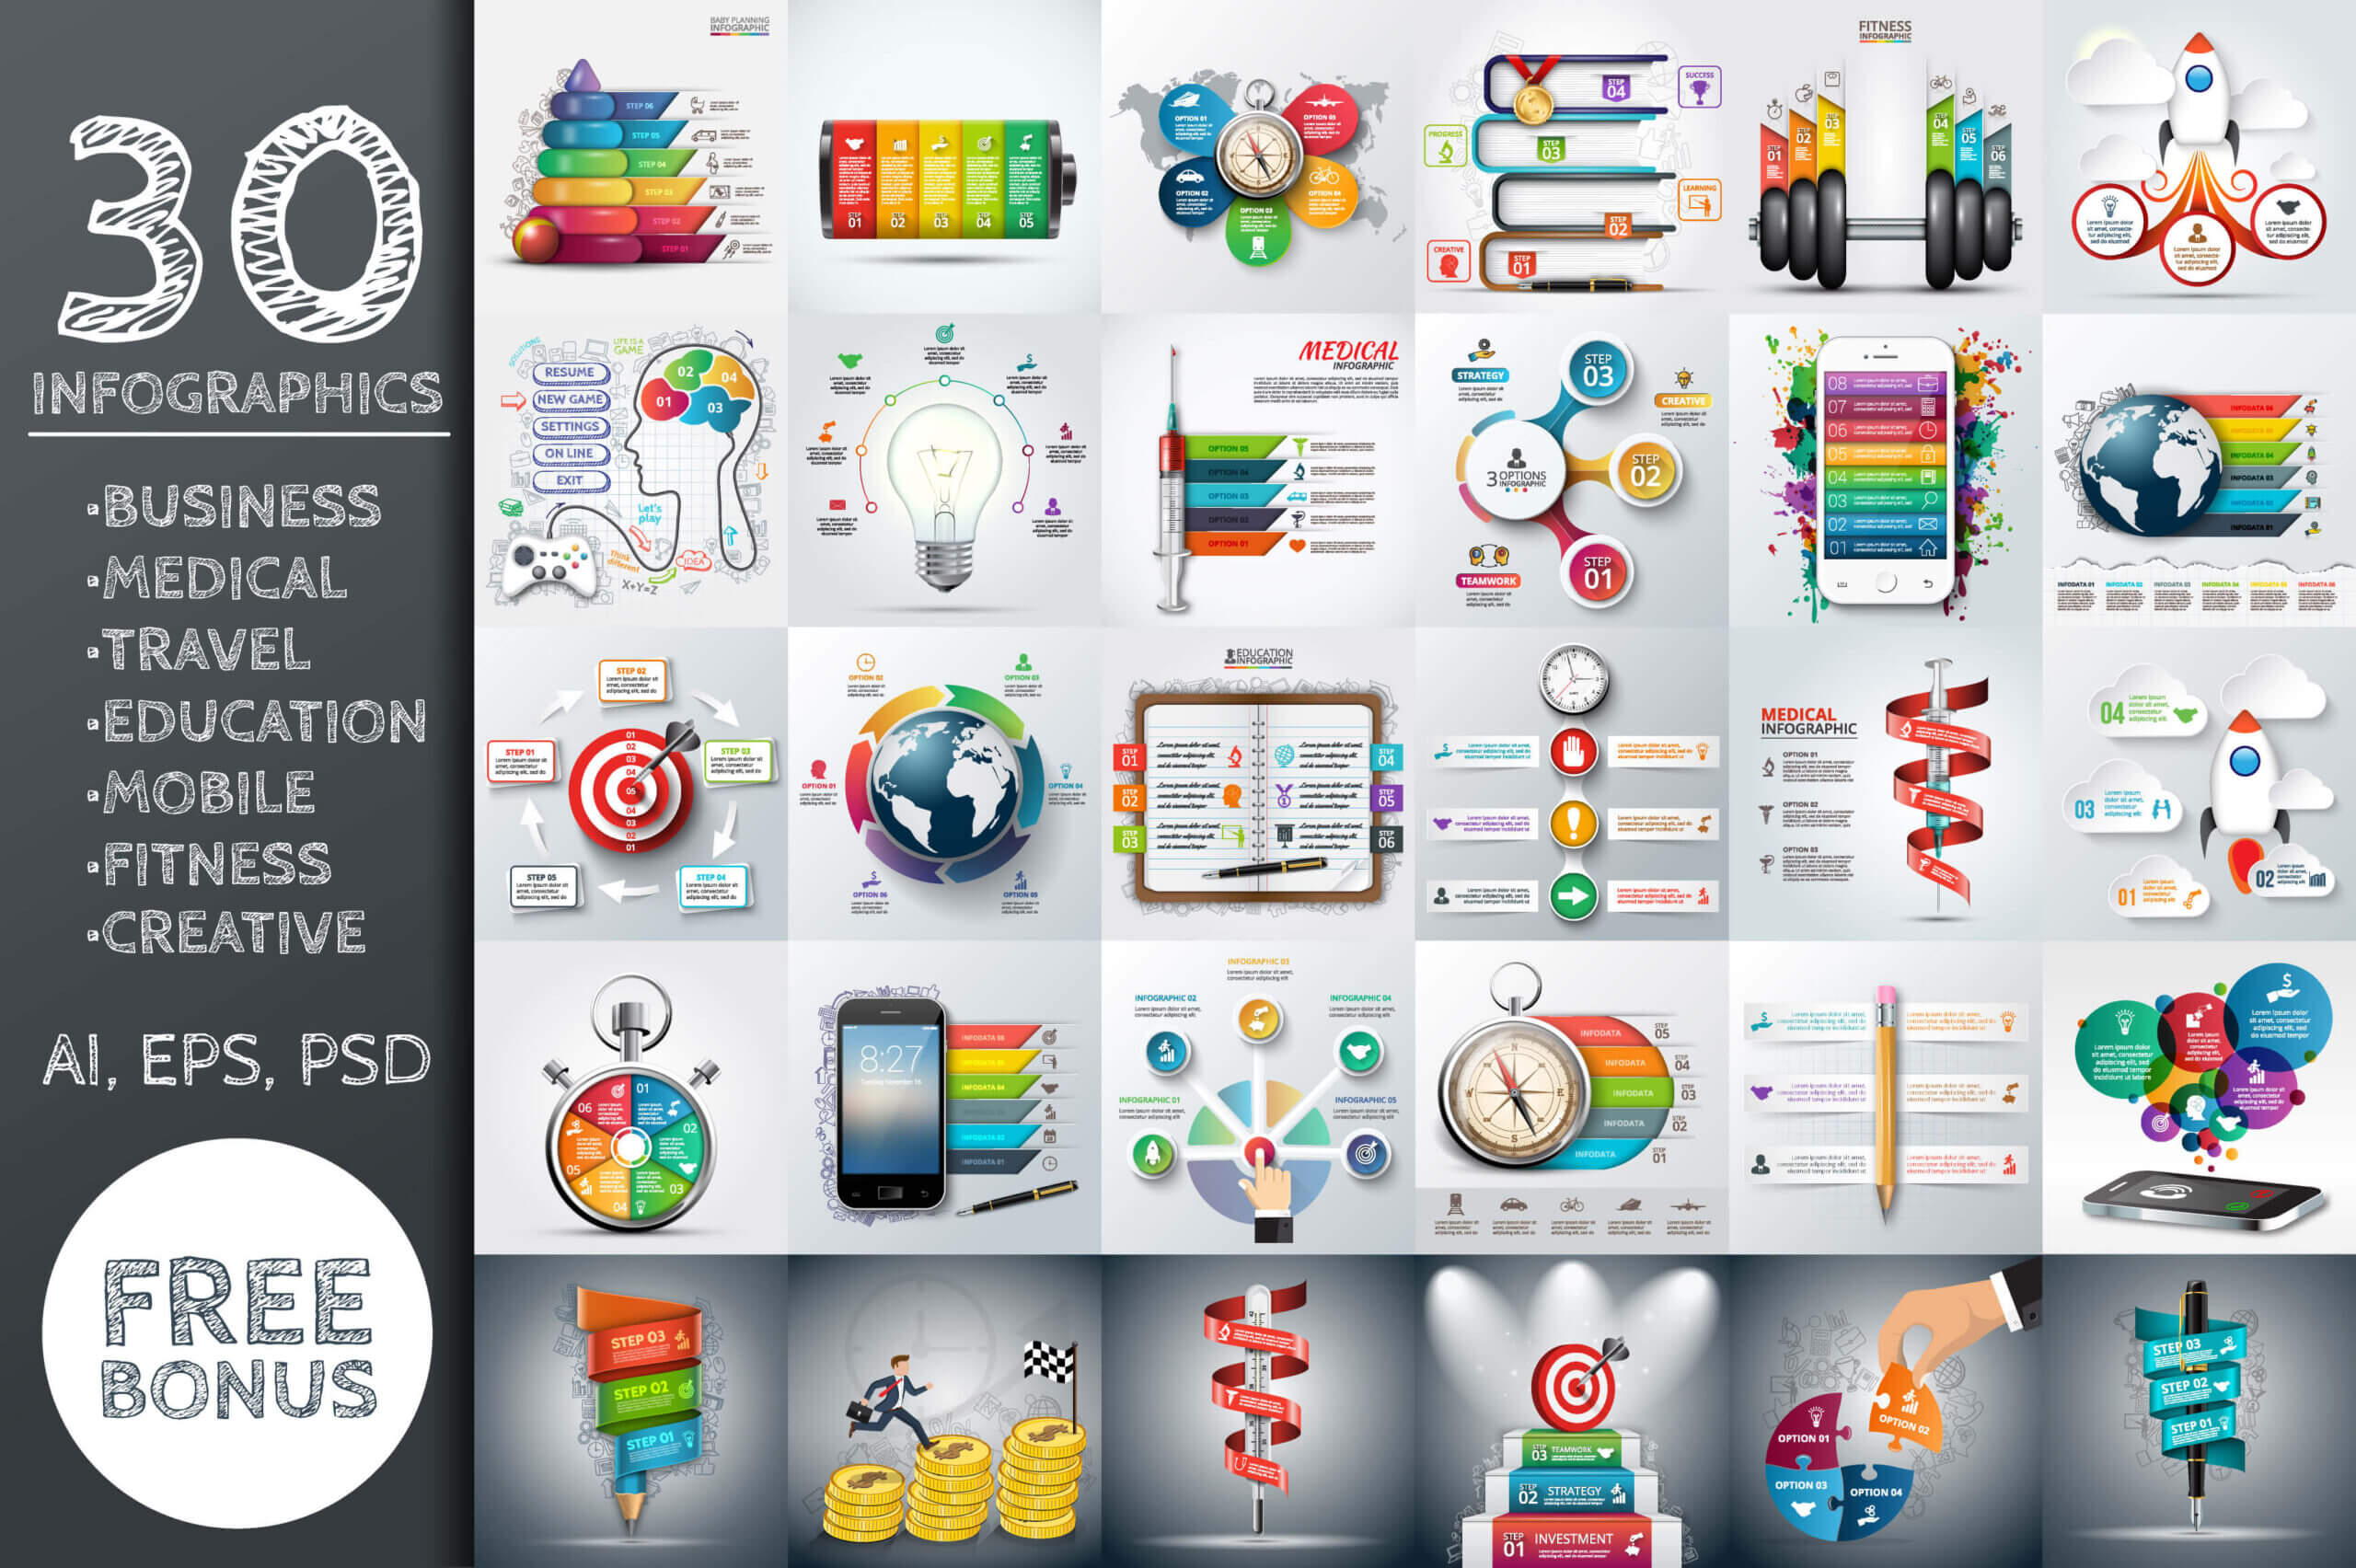 30+ Best Infographic Templates For Illustrator - Top Digital With Adobe Illustrator Infographic Templates